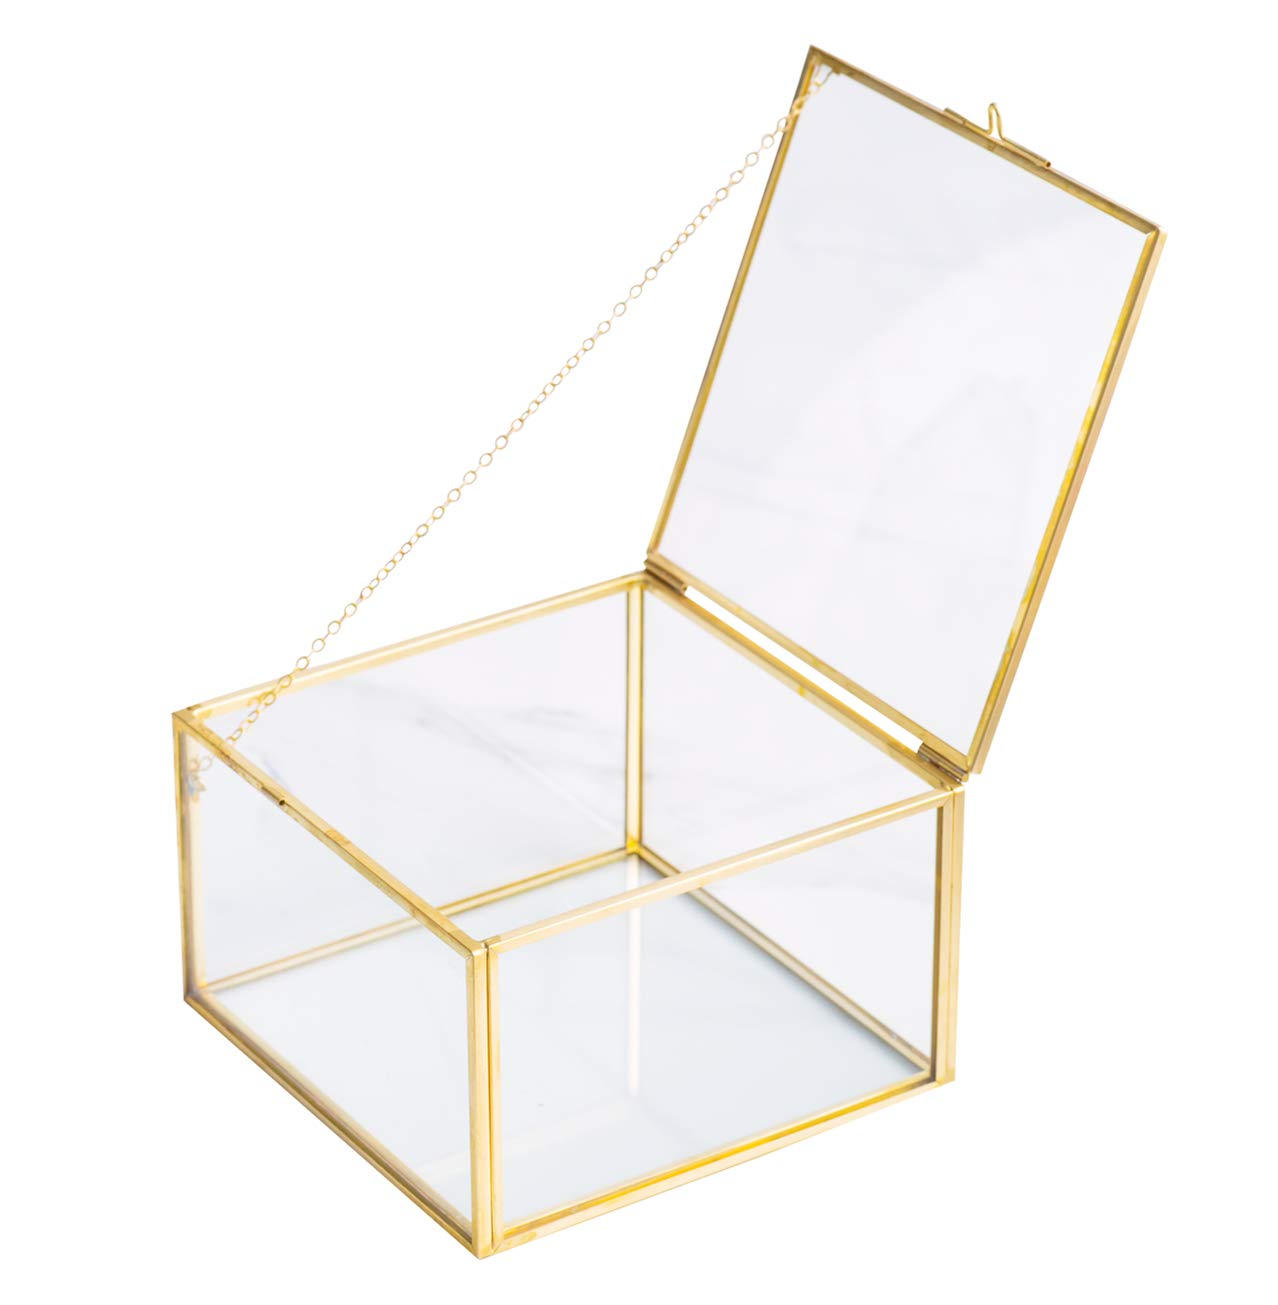 Jewelry Case Box Organizer with Latching Lid Golden Square Vintage Brass /& Clear Glass Decorative Box Home Decor